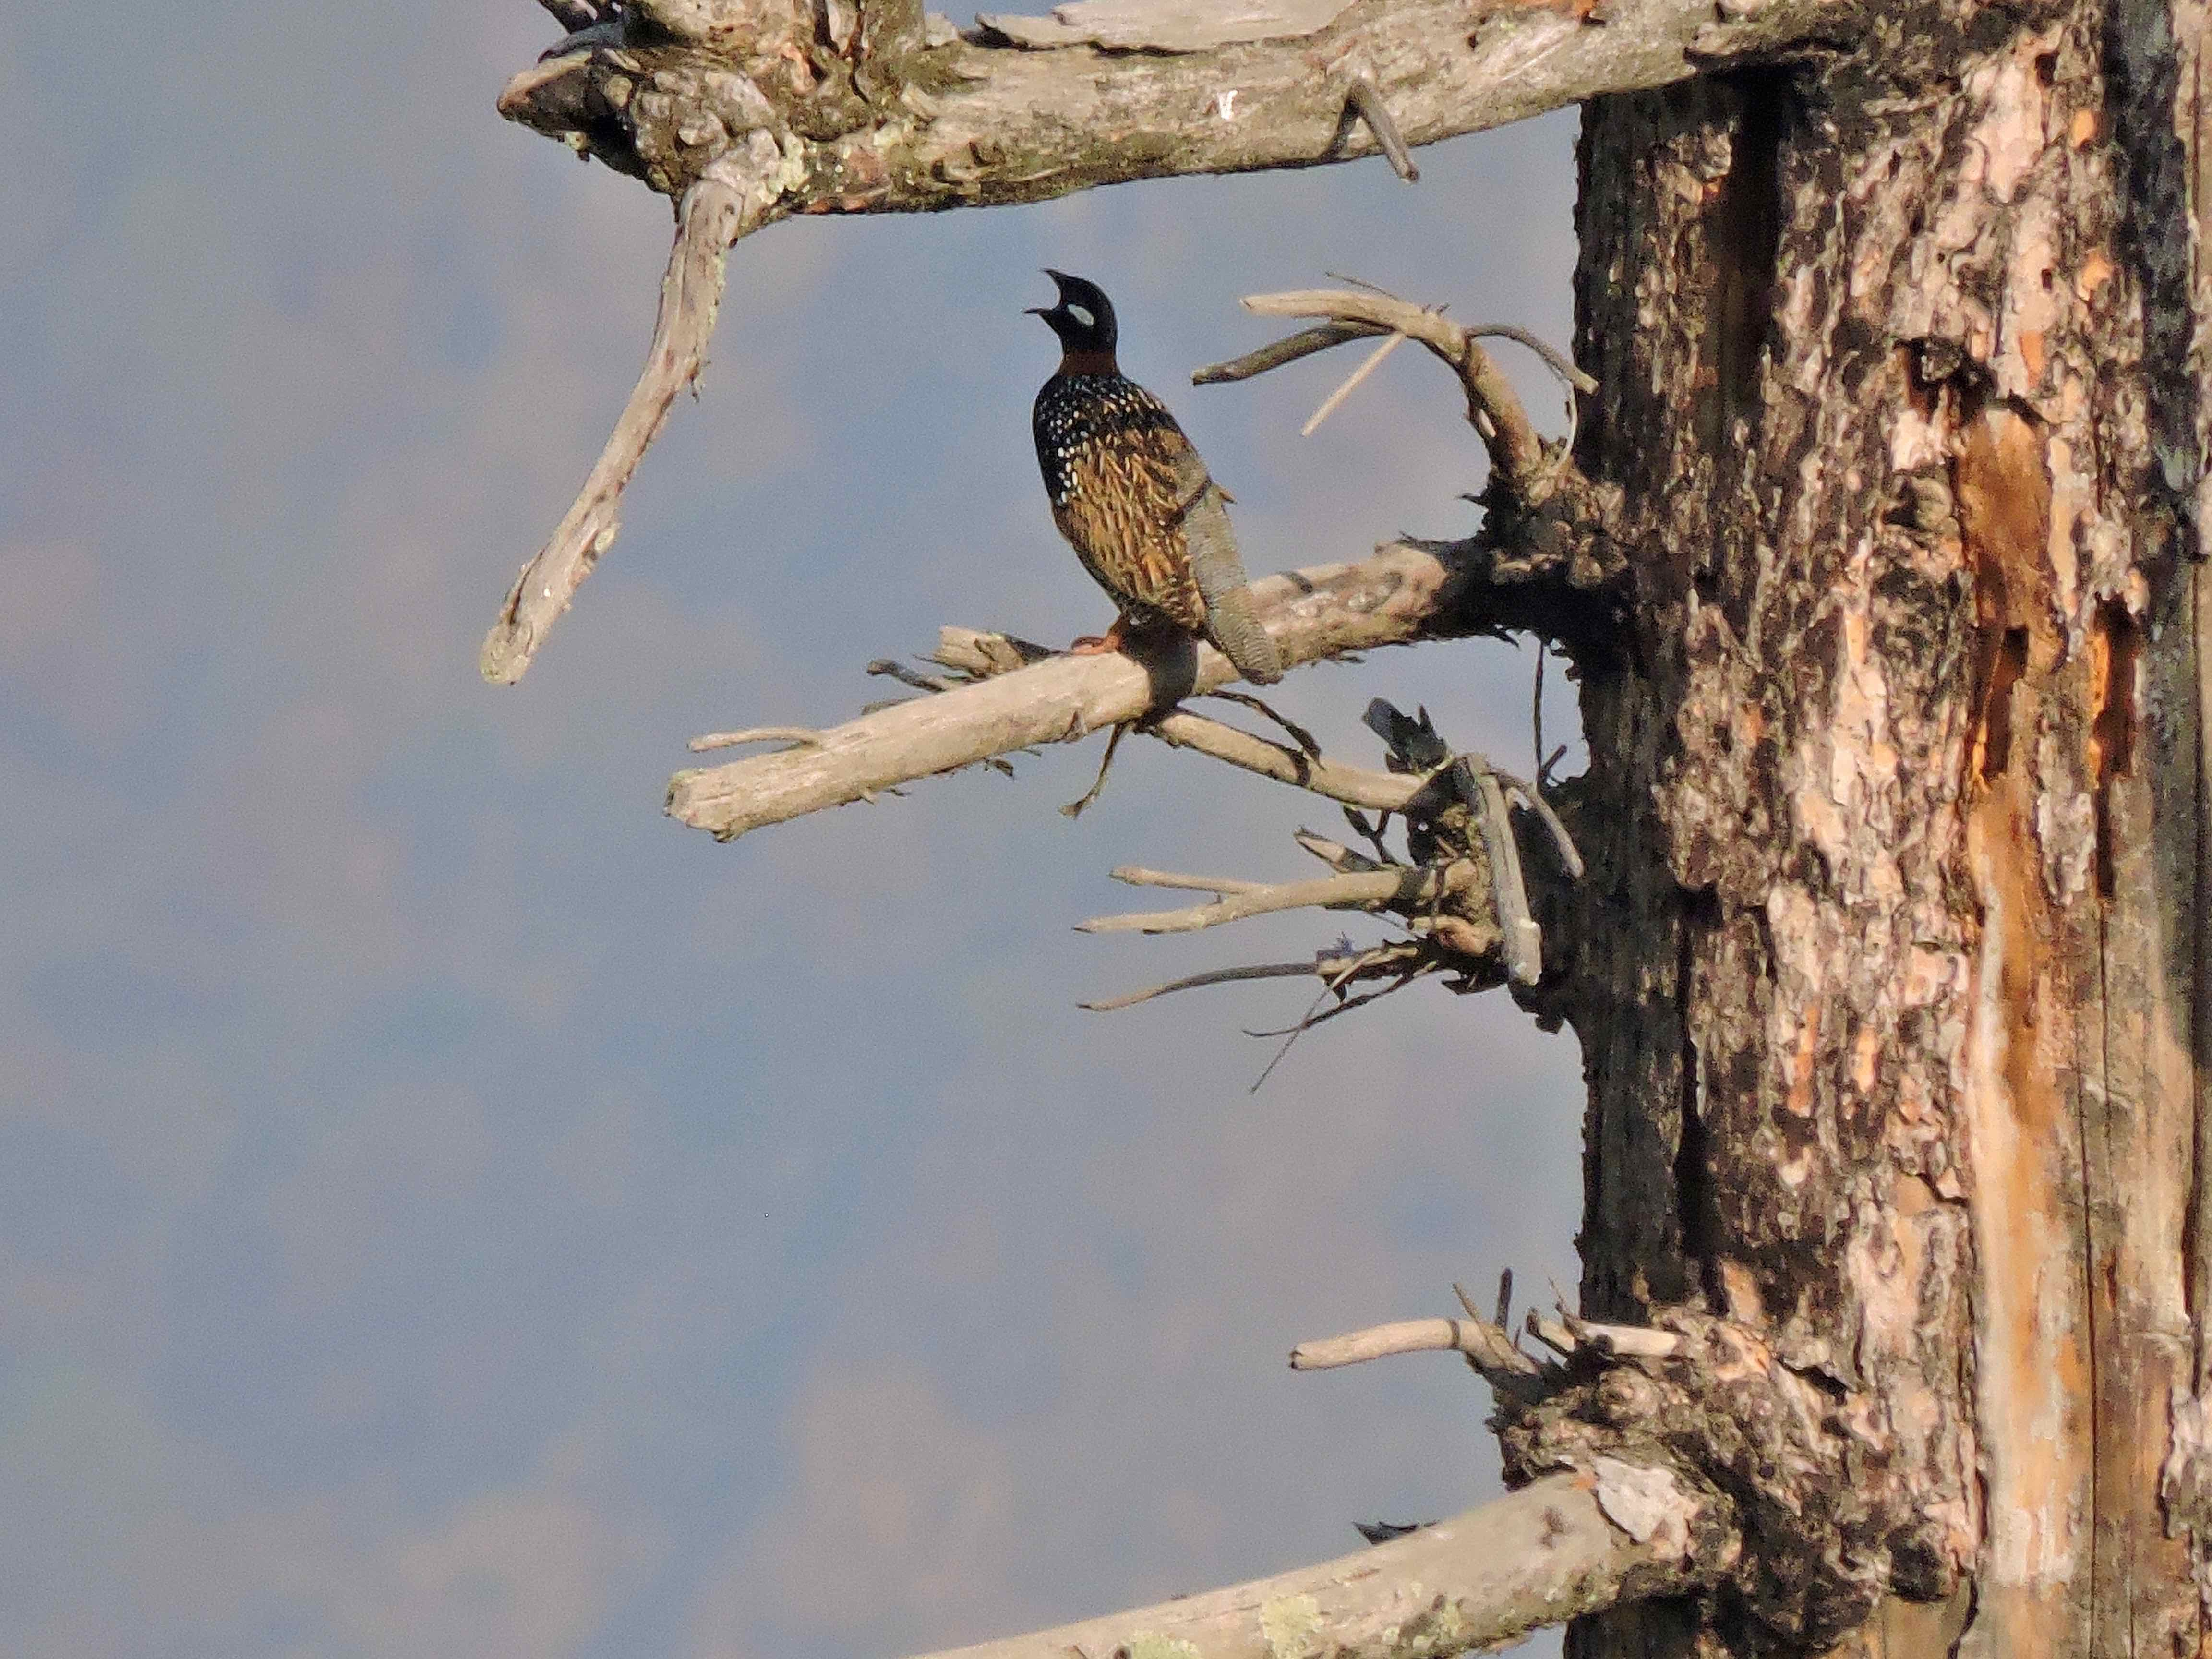 A black francolin photographed singing at 2,650 m in the areas surrounding the Great Himalayan National Park, Kullu. Credit P. Negi